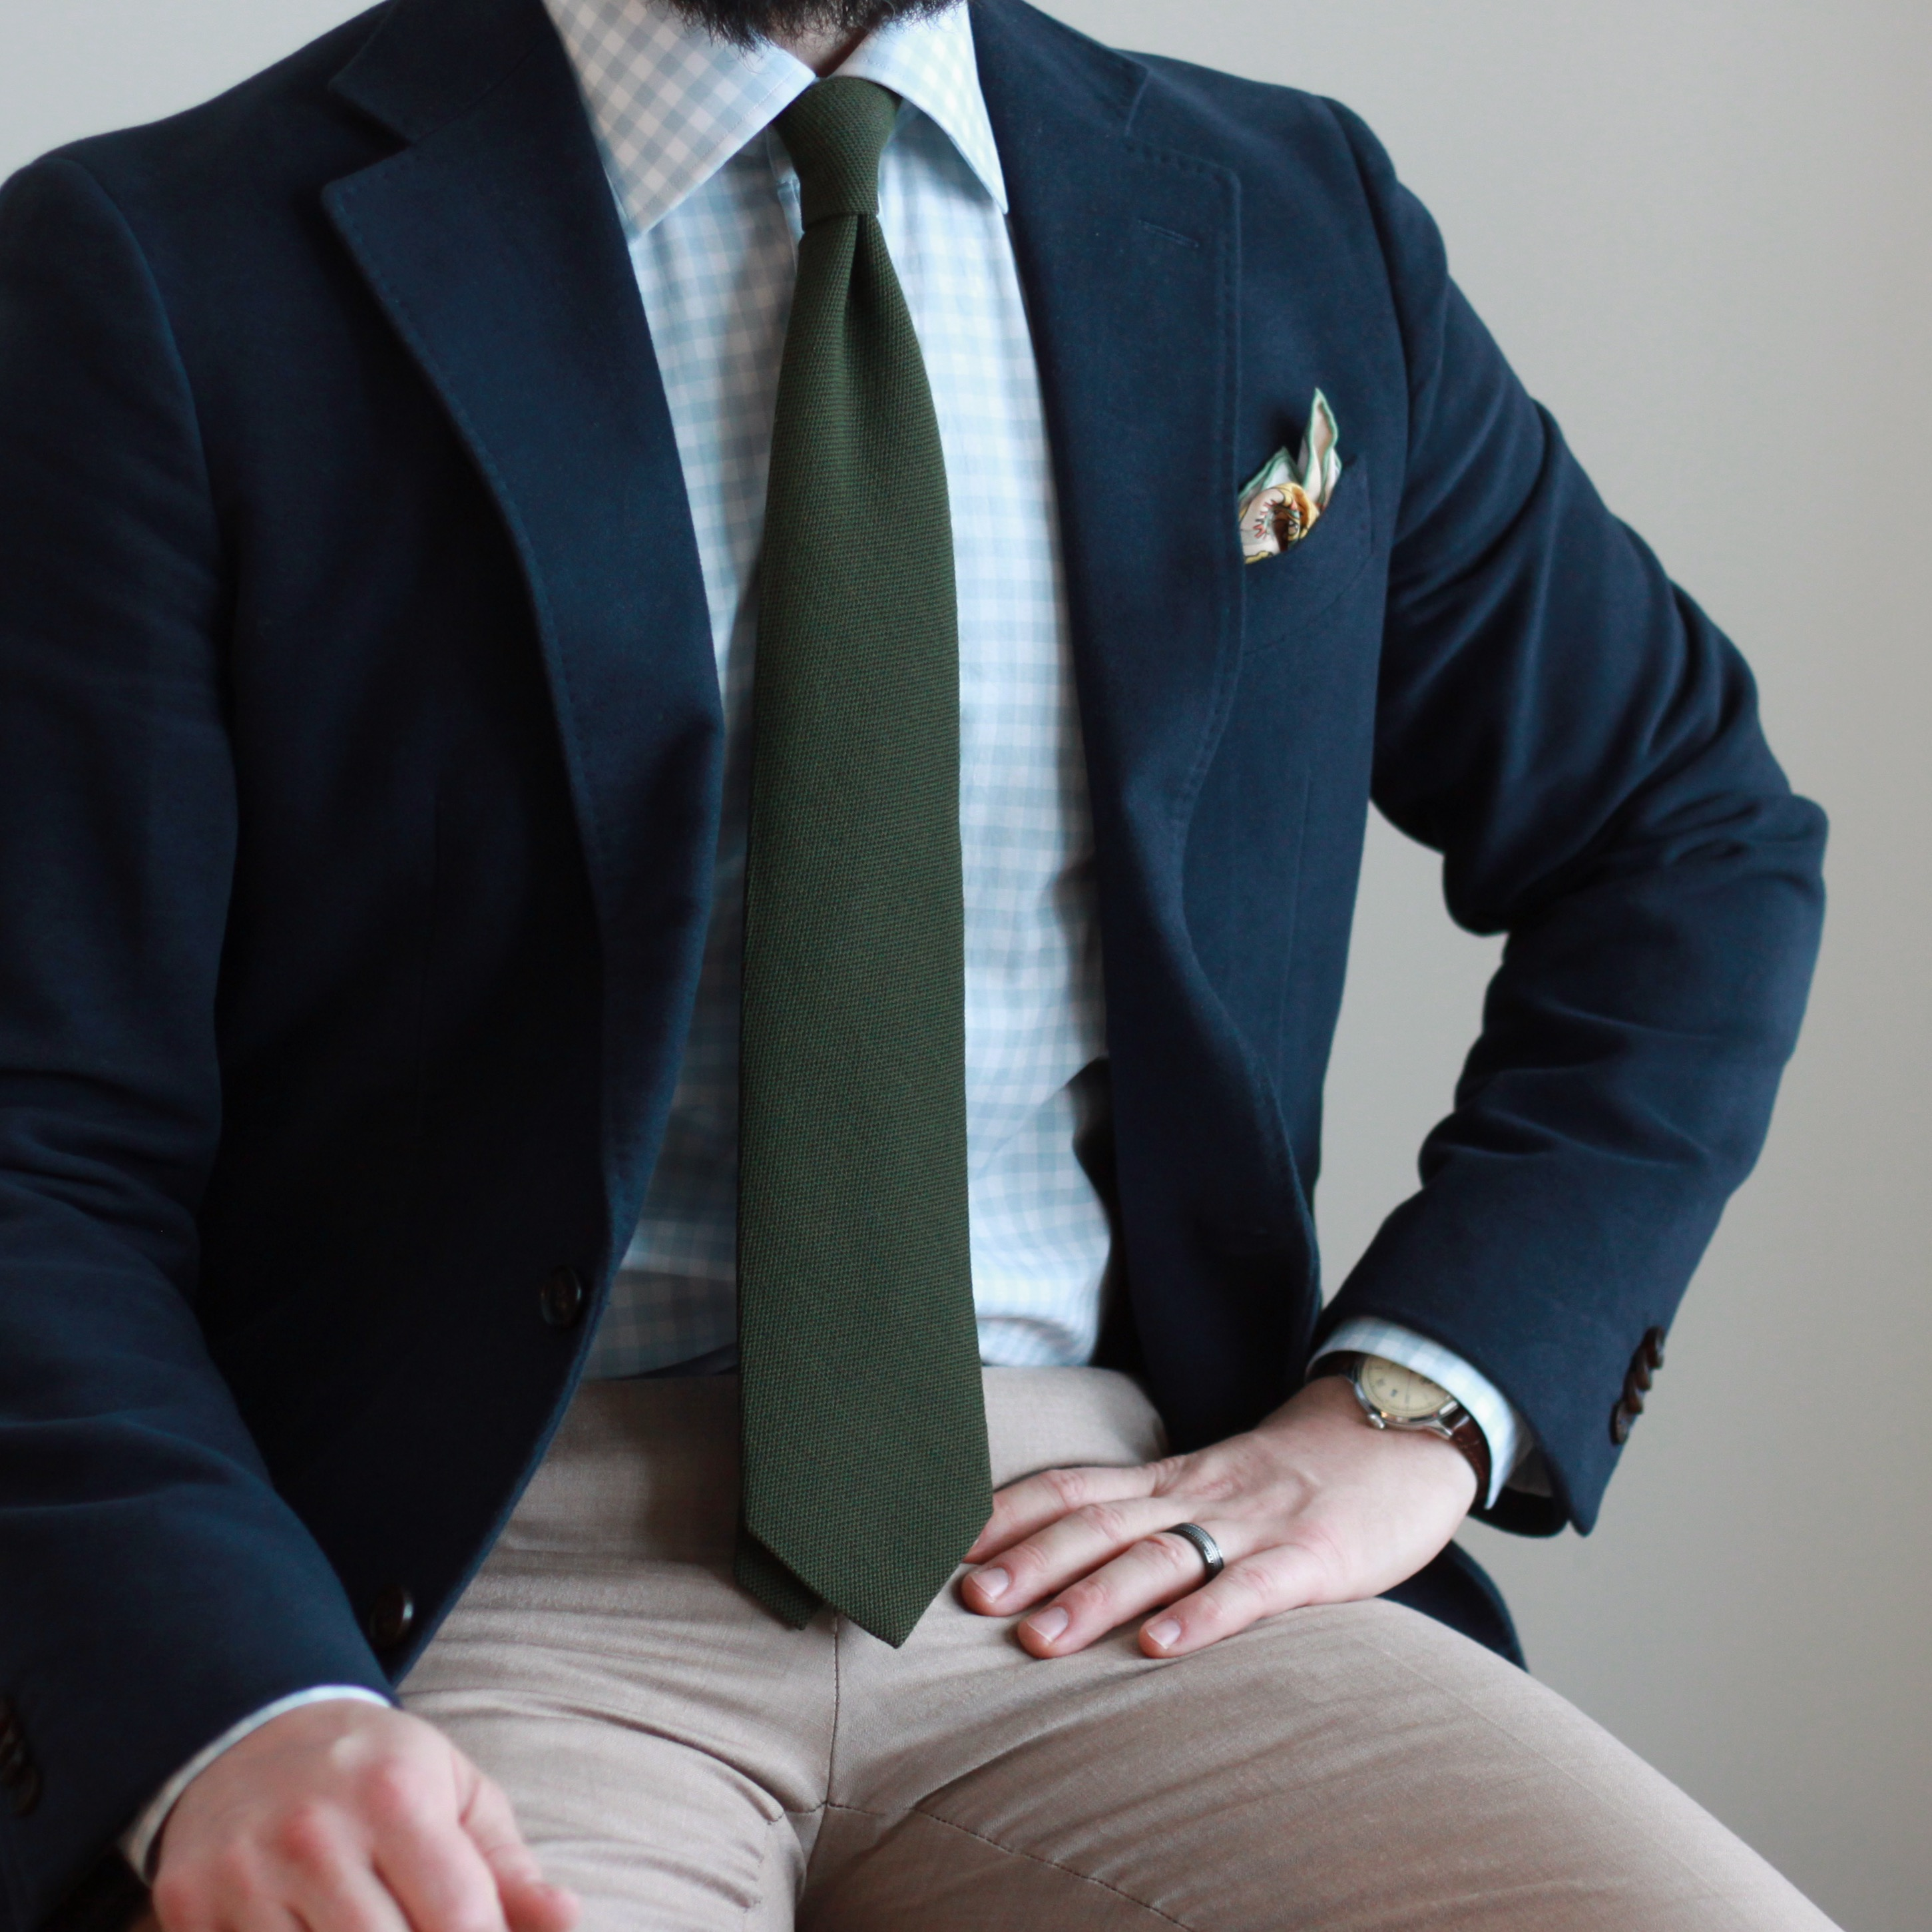 moleskin, navy, sport coat, odd jacket, earth tones, what i wore, outfit inspiration